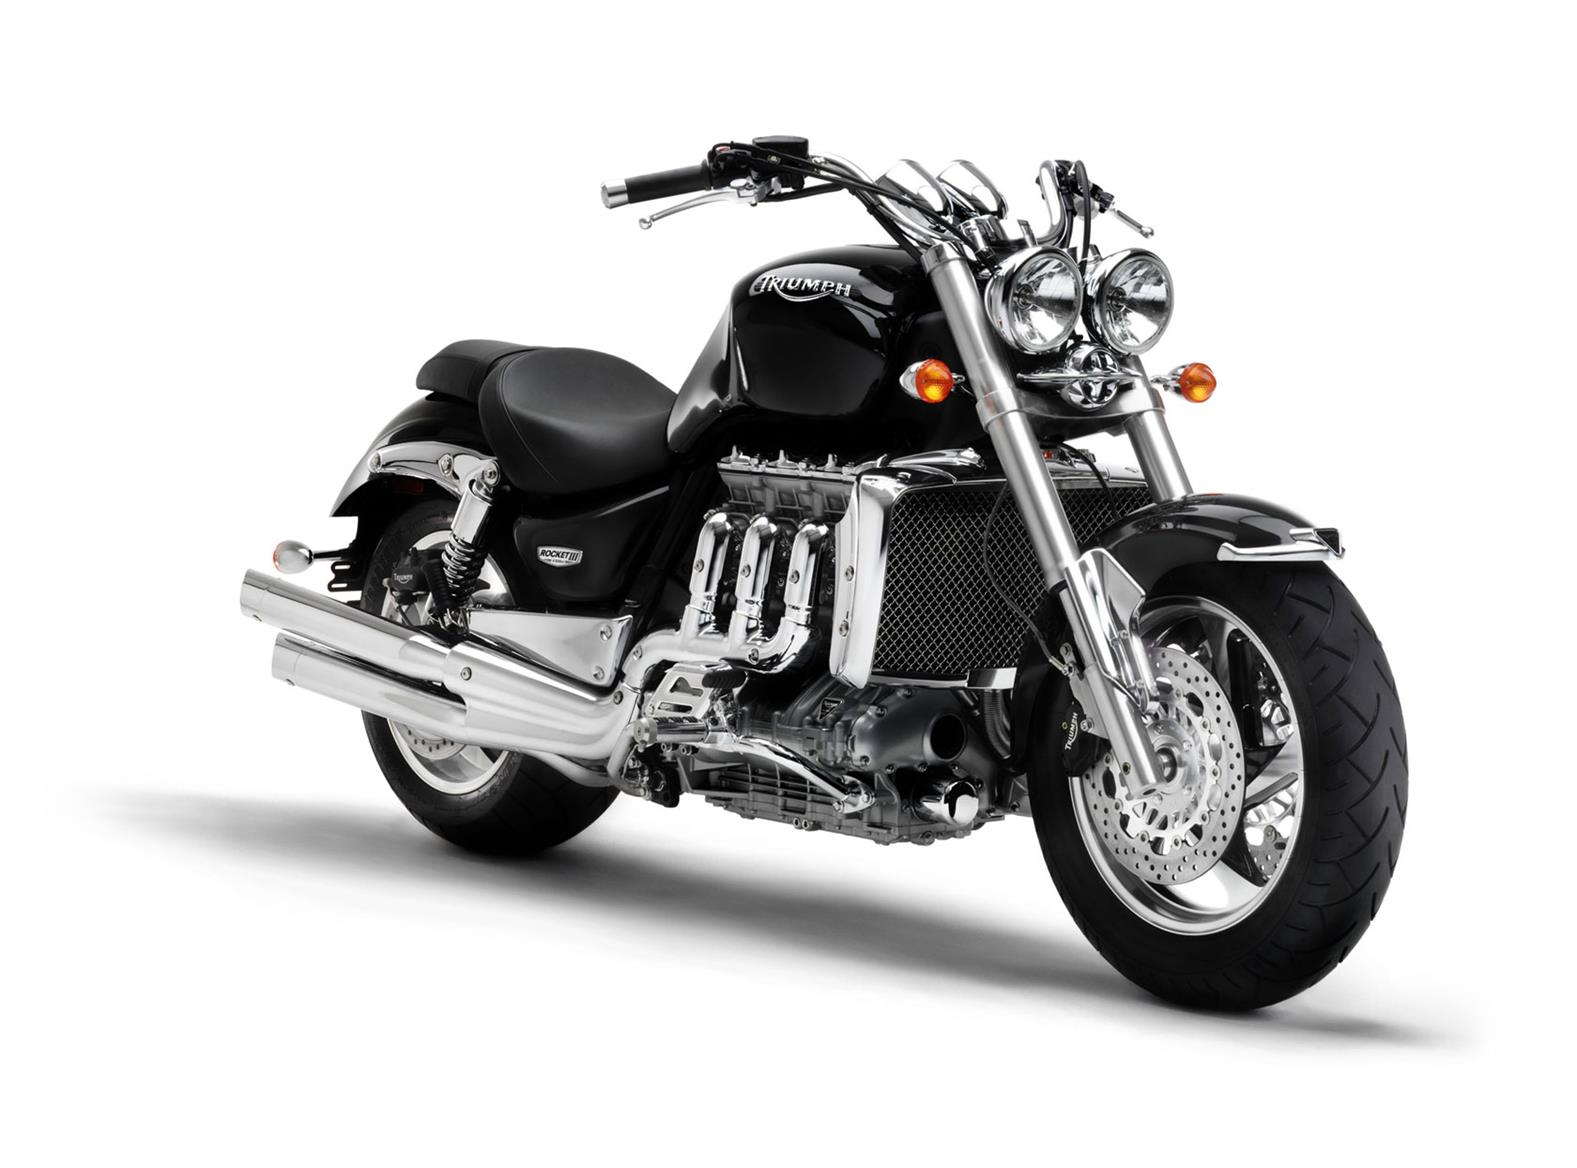 triumph rocket iii motorcycle - photo #13